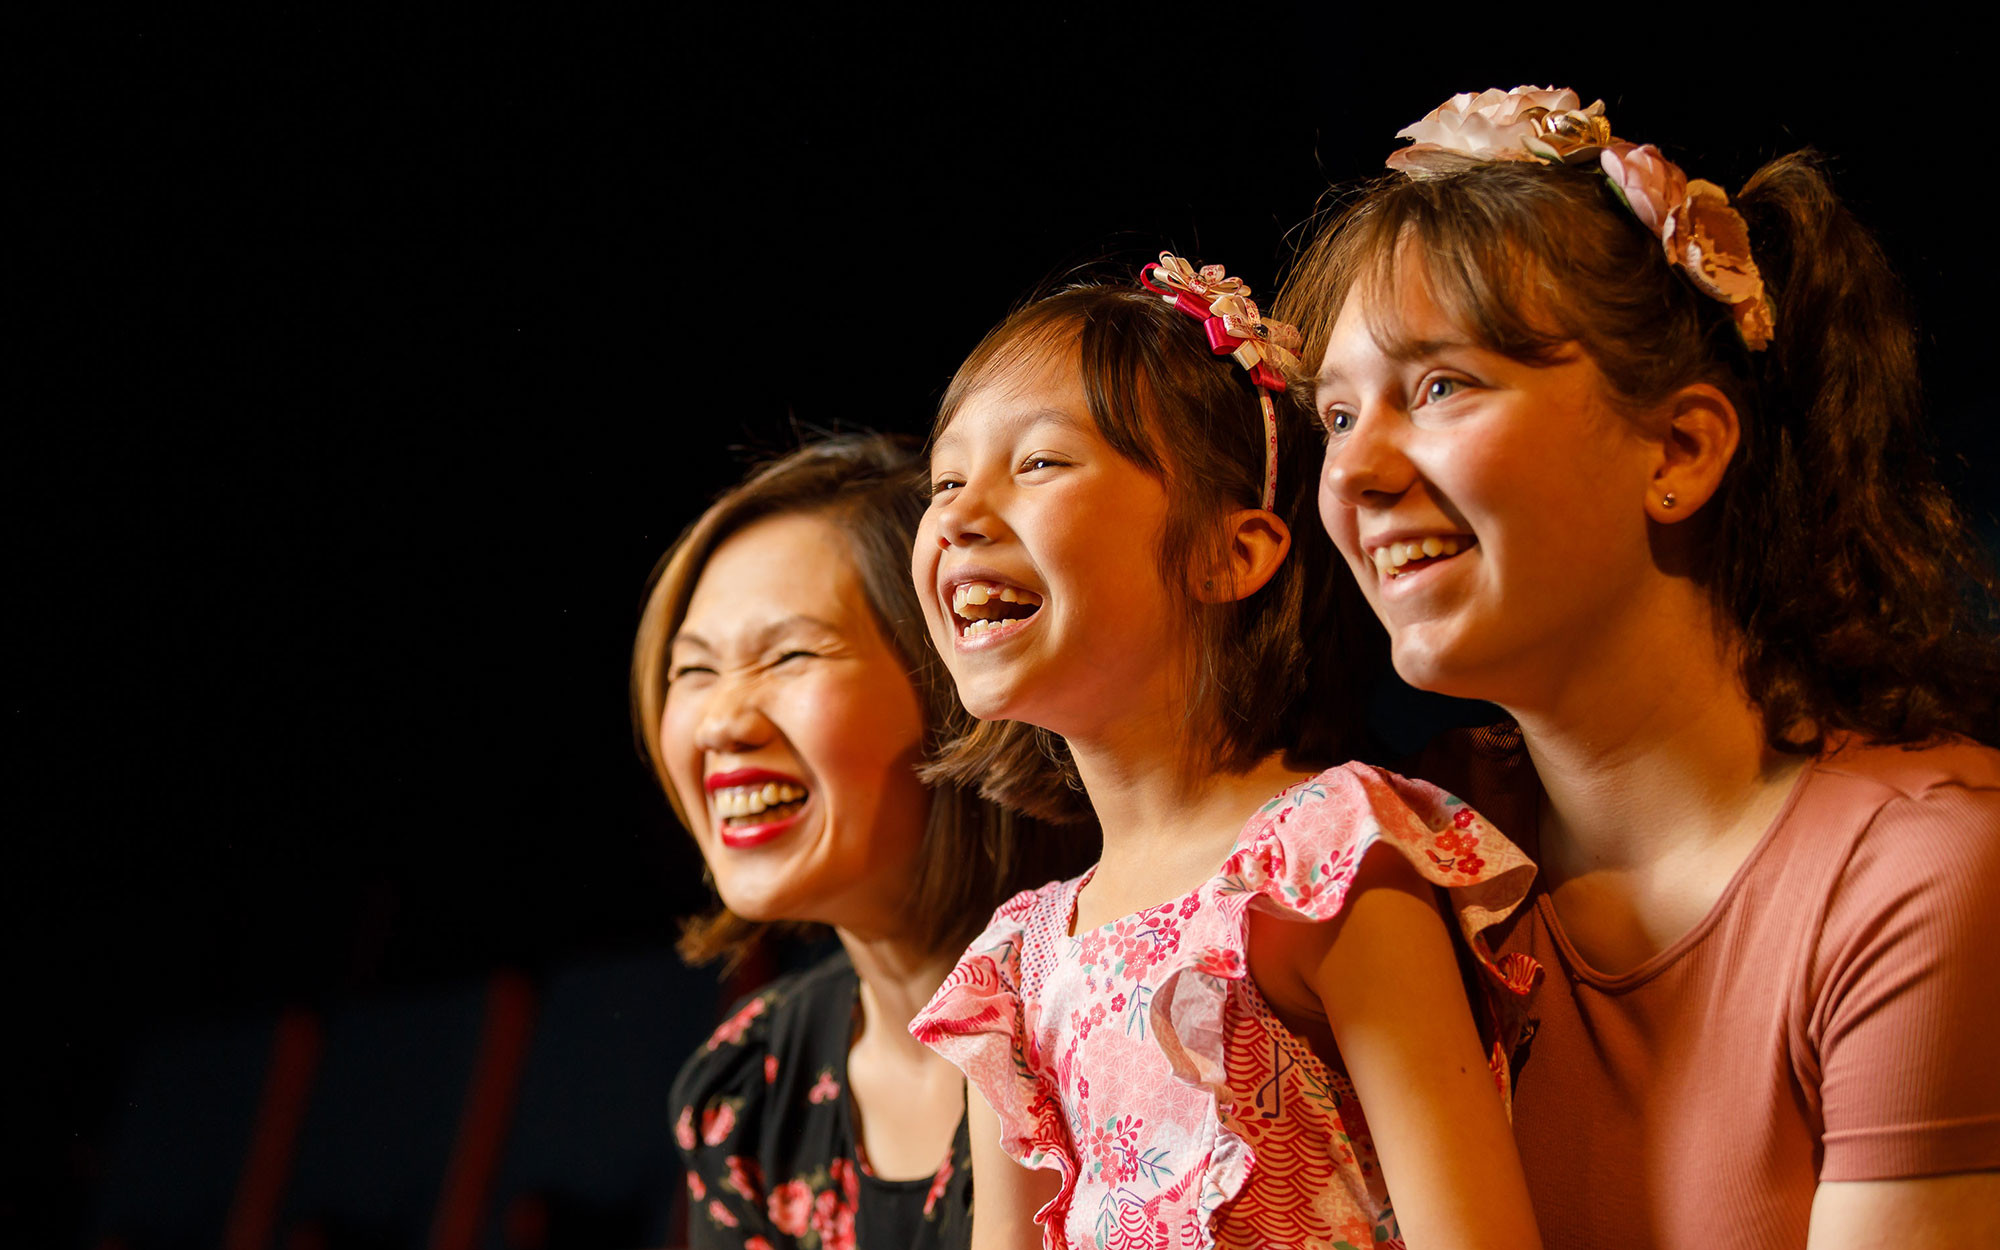 A mother and her two children laughing and smiling enthusiastically together.